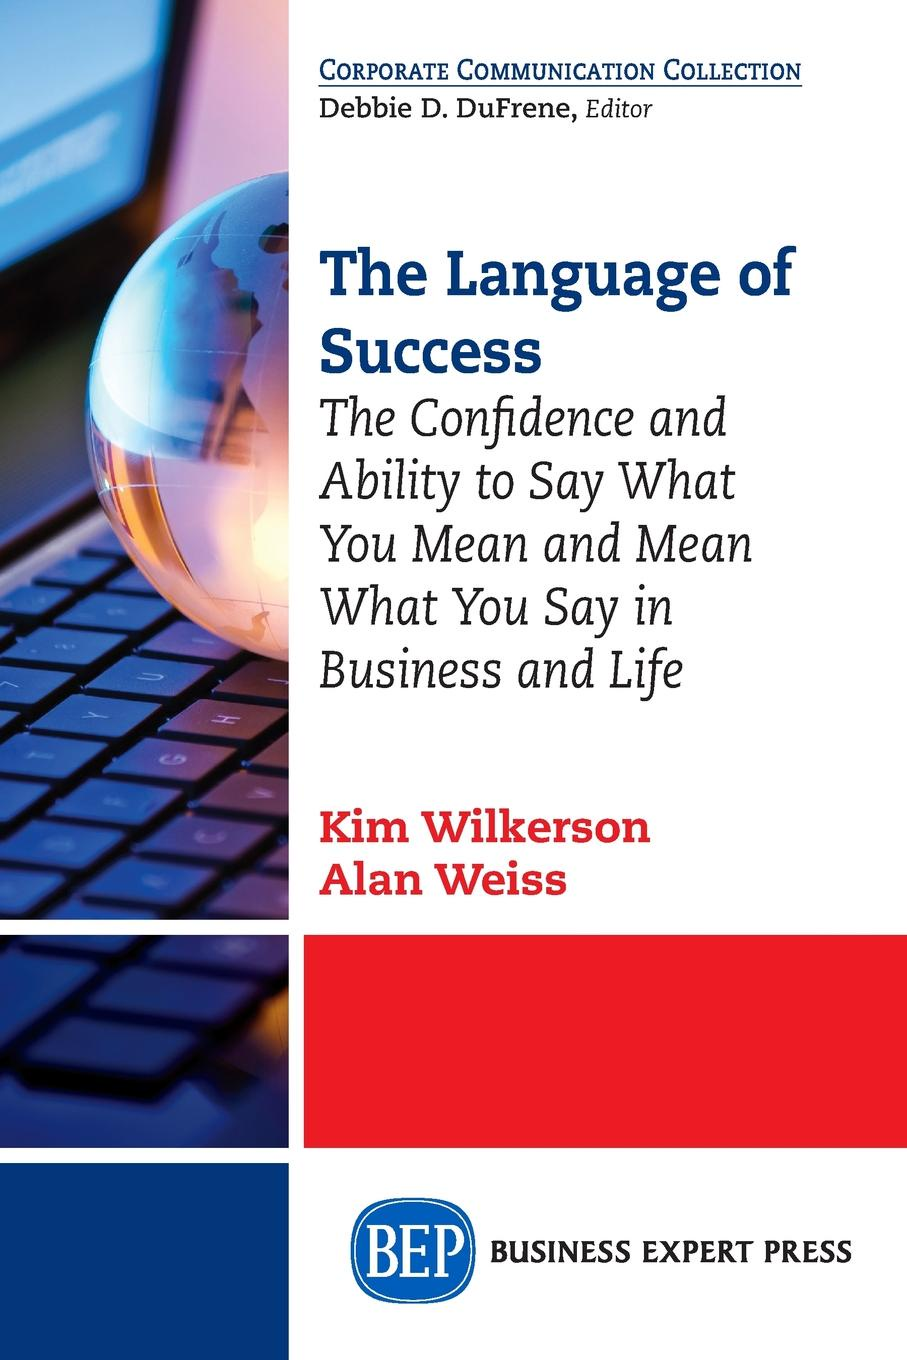 Kim Wilkerson, Alan Weiss The Language of Success. The Confidence and Ability to Say What You Mean and Mean What You Say in Business and Life edward merrow w industrial megaprojects concepts strategies and practices for success